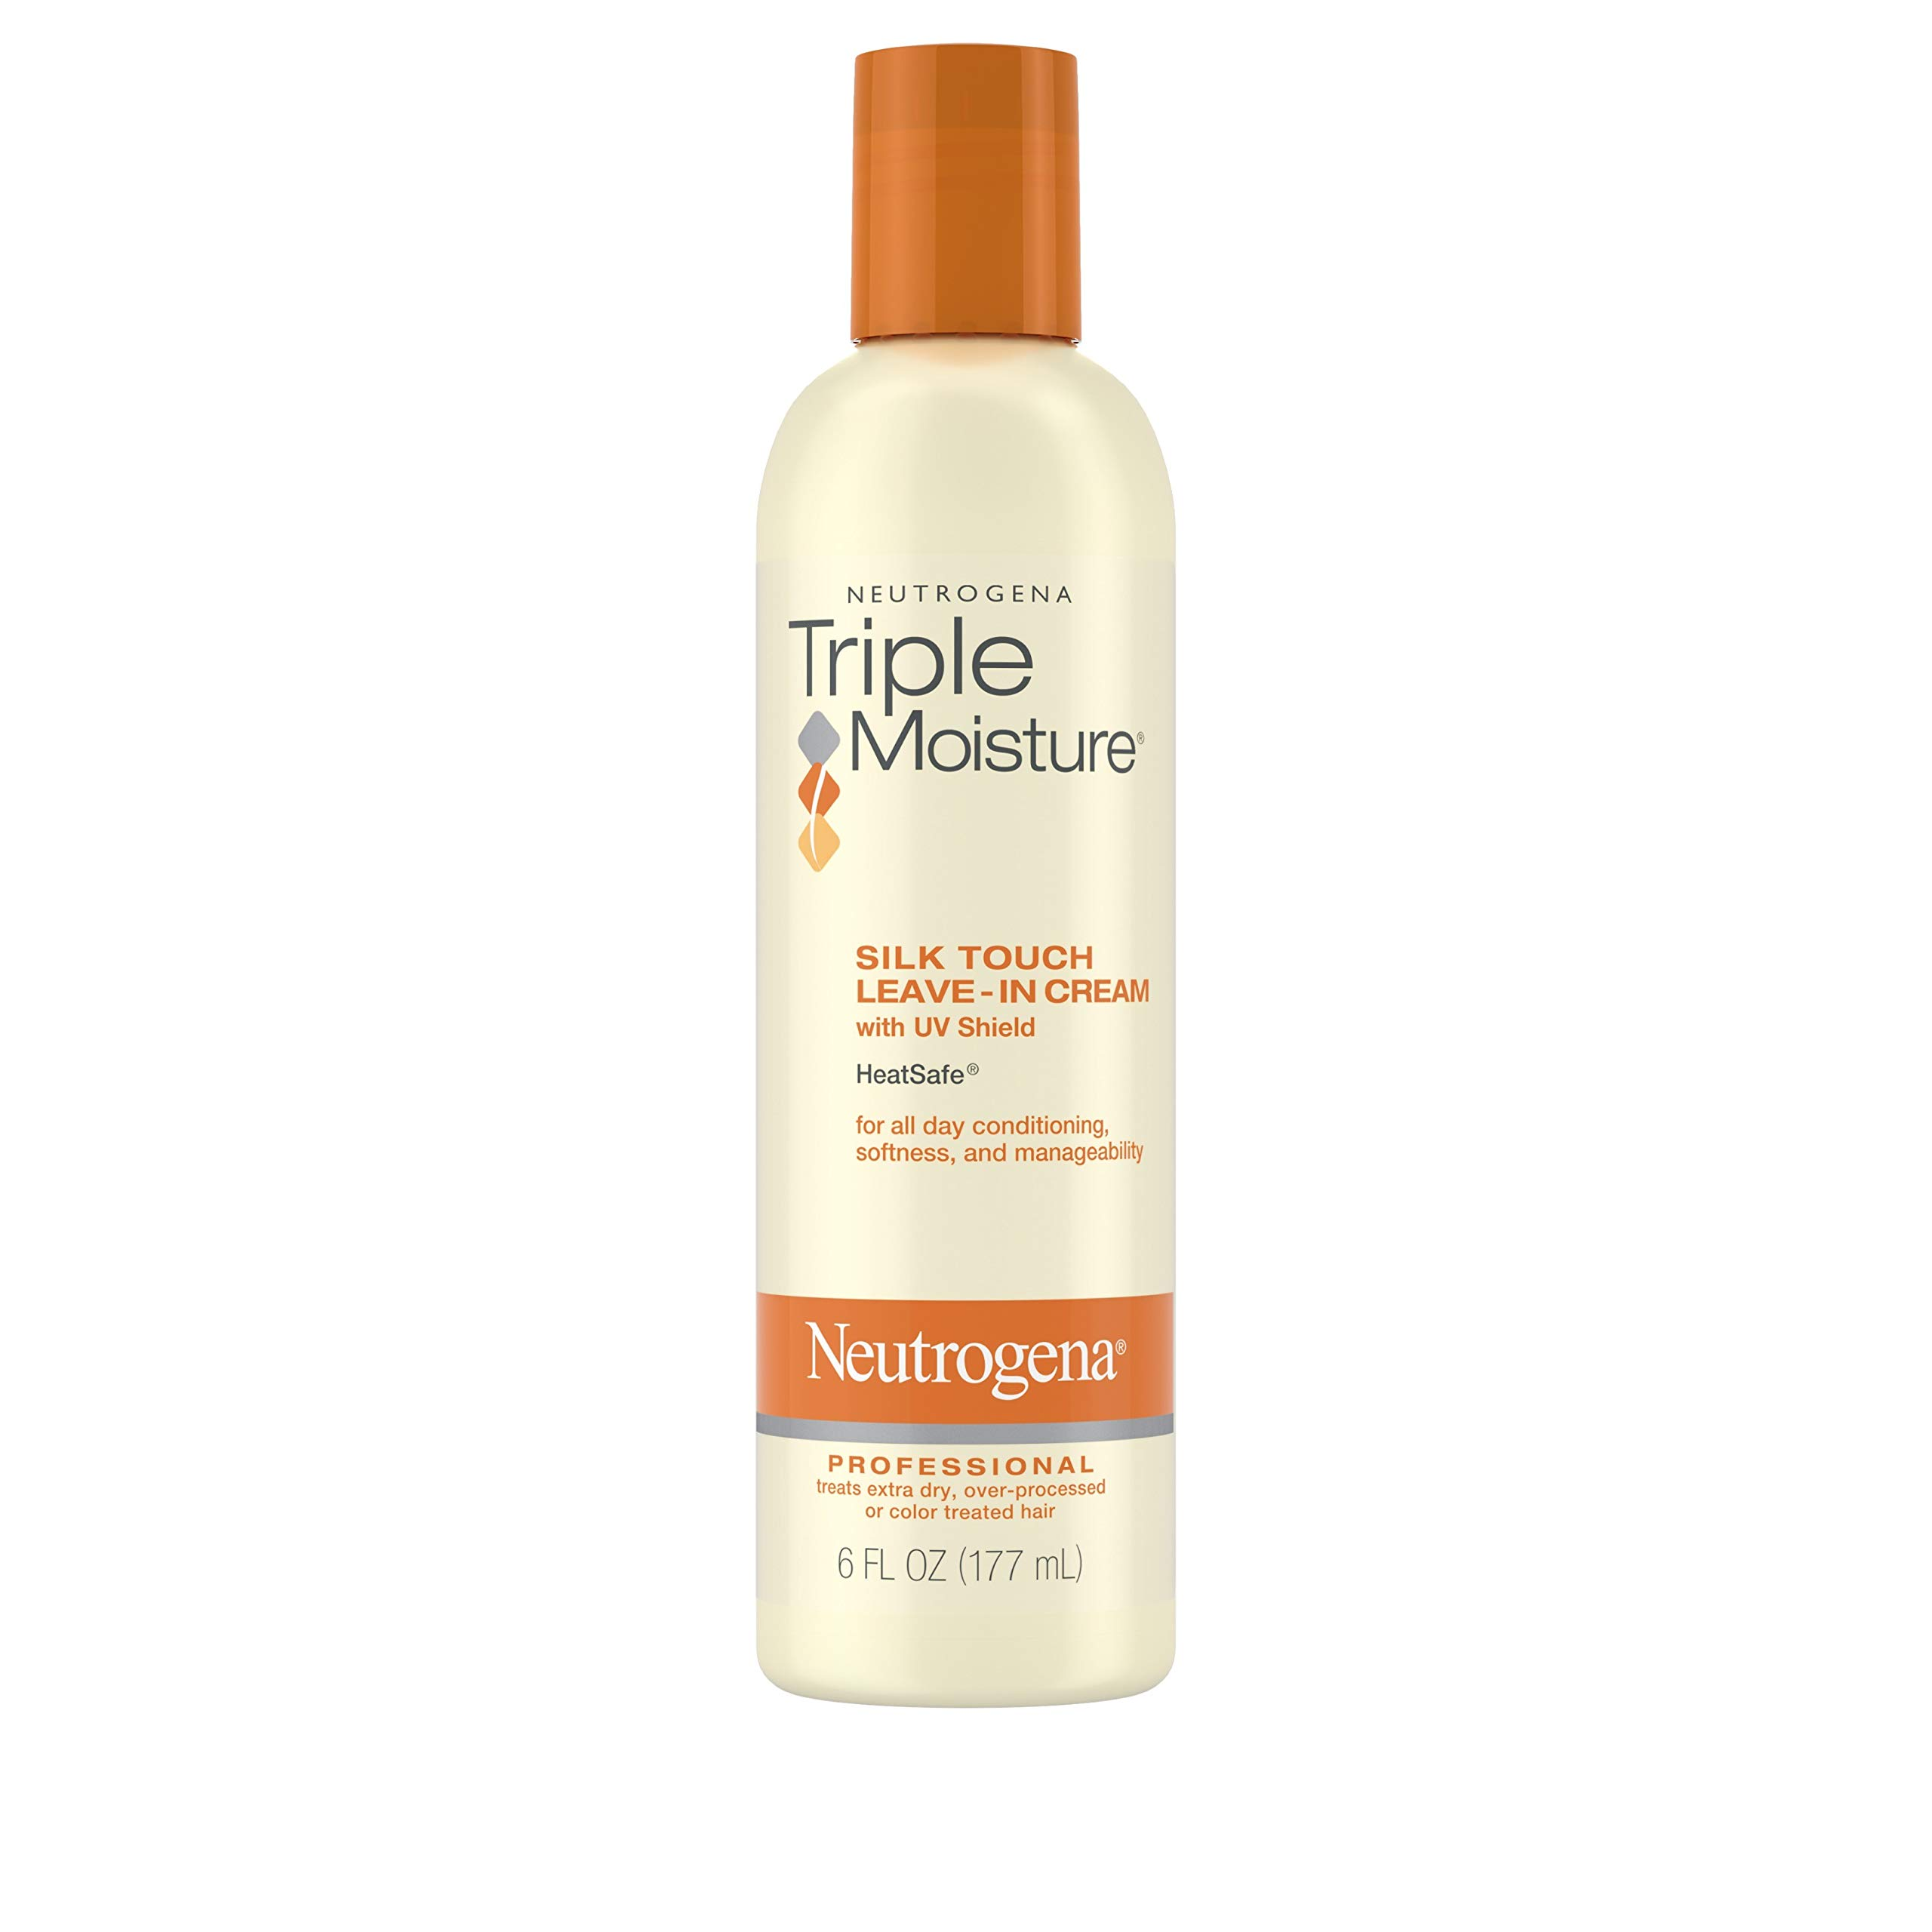 Neutrogena Triple Moisture Silk Touch Leave-In Cream Conditioner for Extra Dry Hair, Damaged & Over-Processed Hair, Hydrating with Olive, Meadowfoam & Sweet Almond, 6 fl. oz